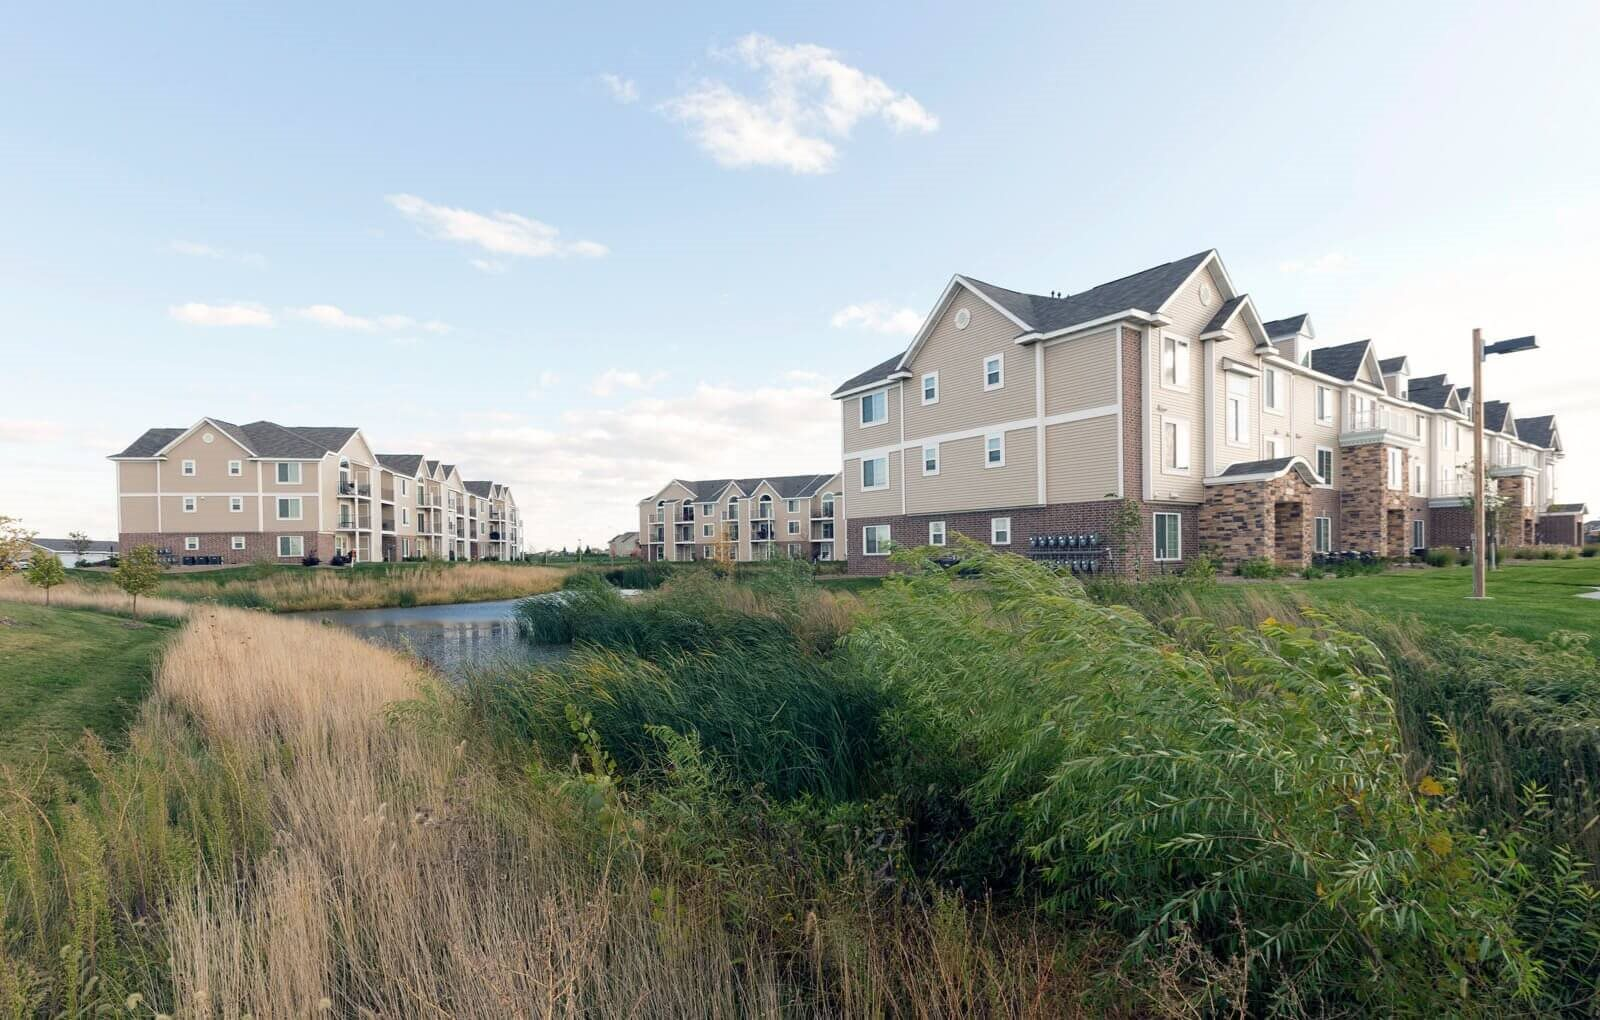 Lush Green Outdoor Spaces at Fieldstream Apartment Homes, Iowa